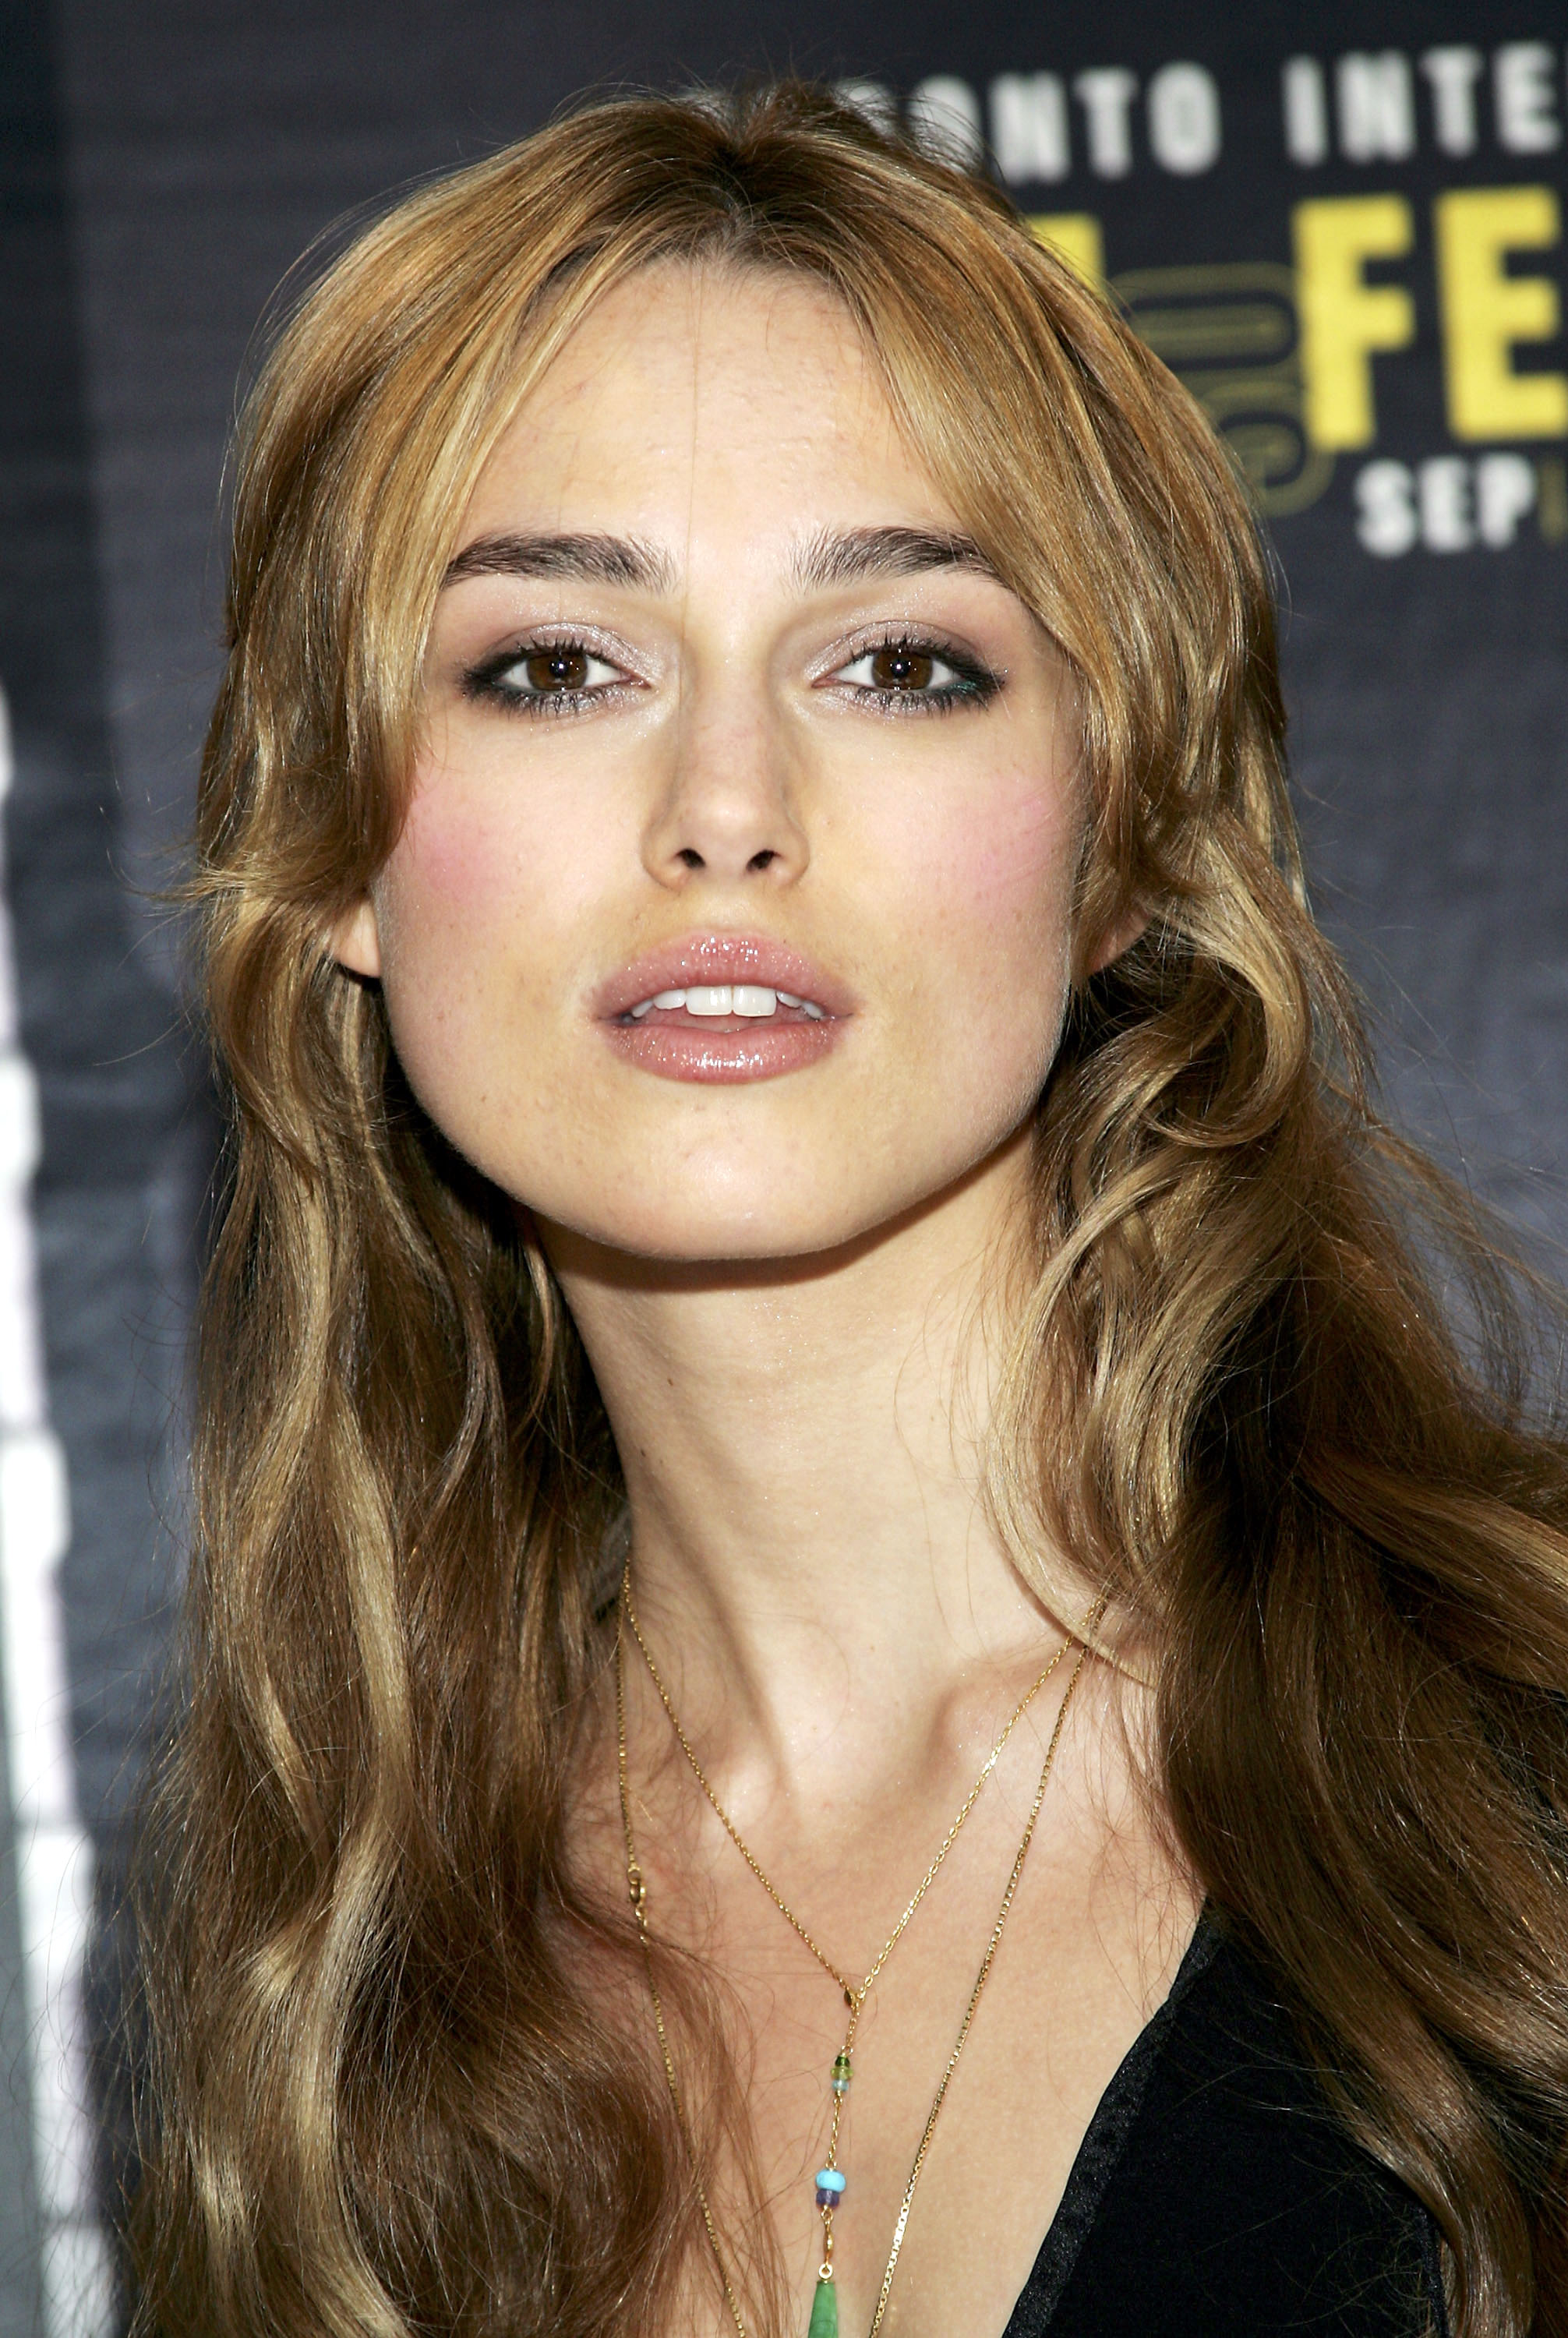 Keira Knightley won't act in sex scenes directed by men